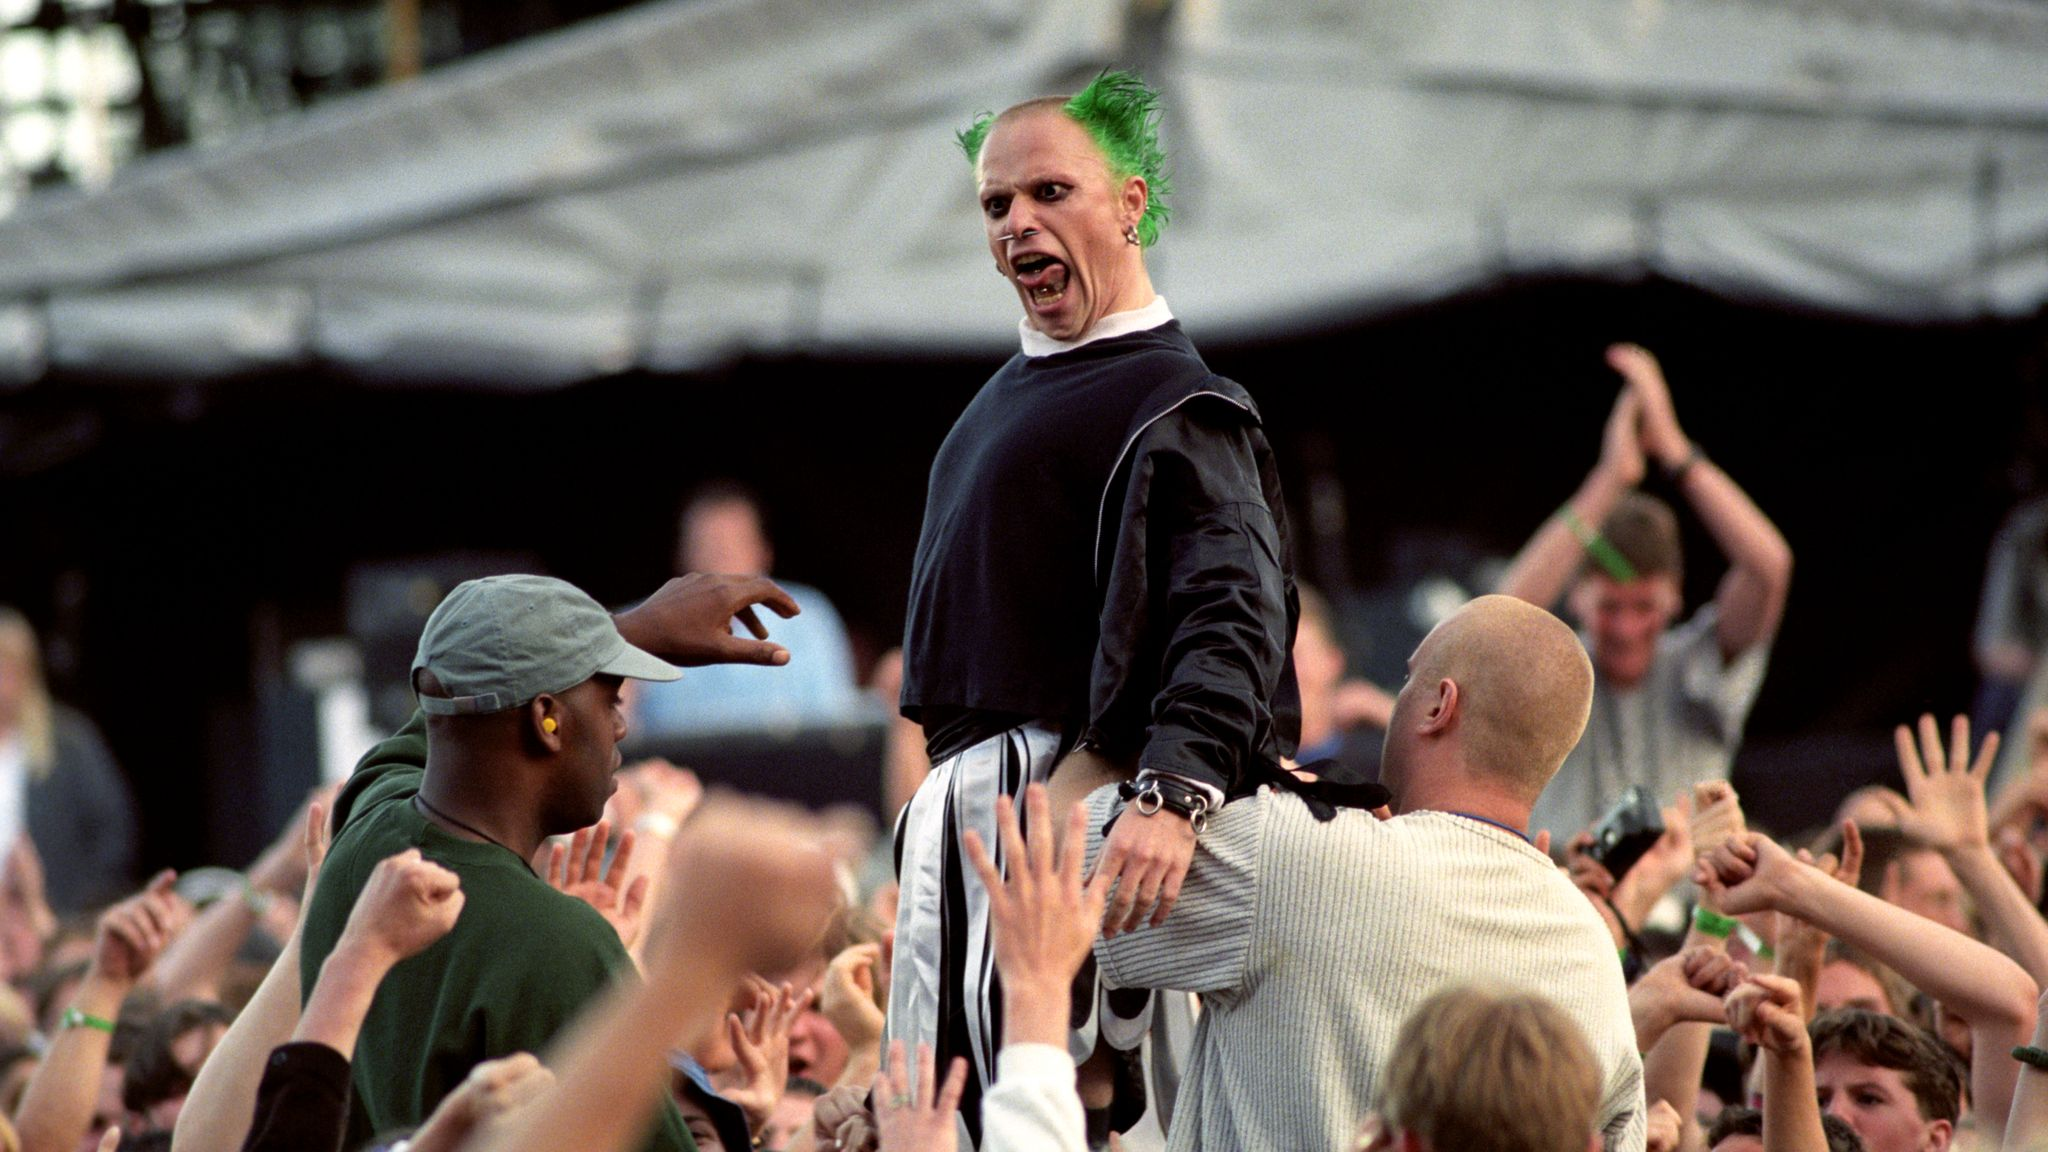 Keith Flint of The Prodigy performing at one of Oasis's famous Knebworth gigs in August 1996